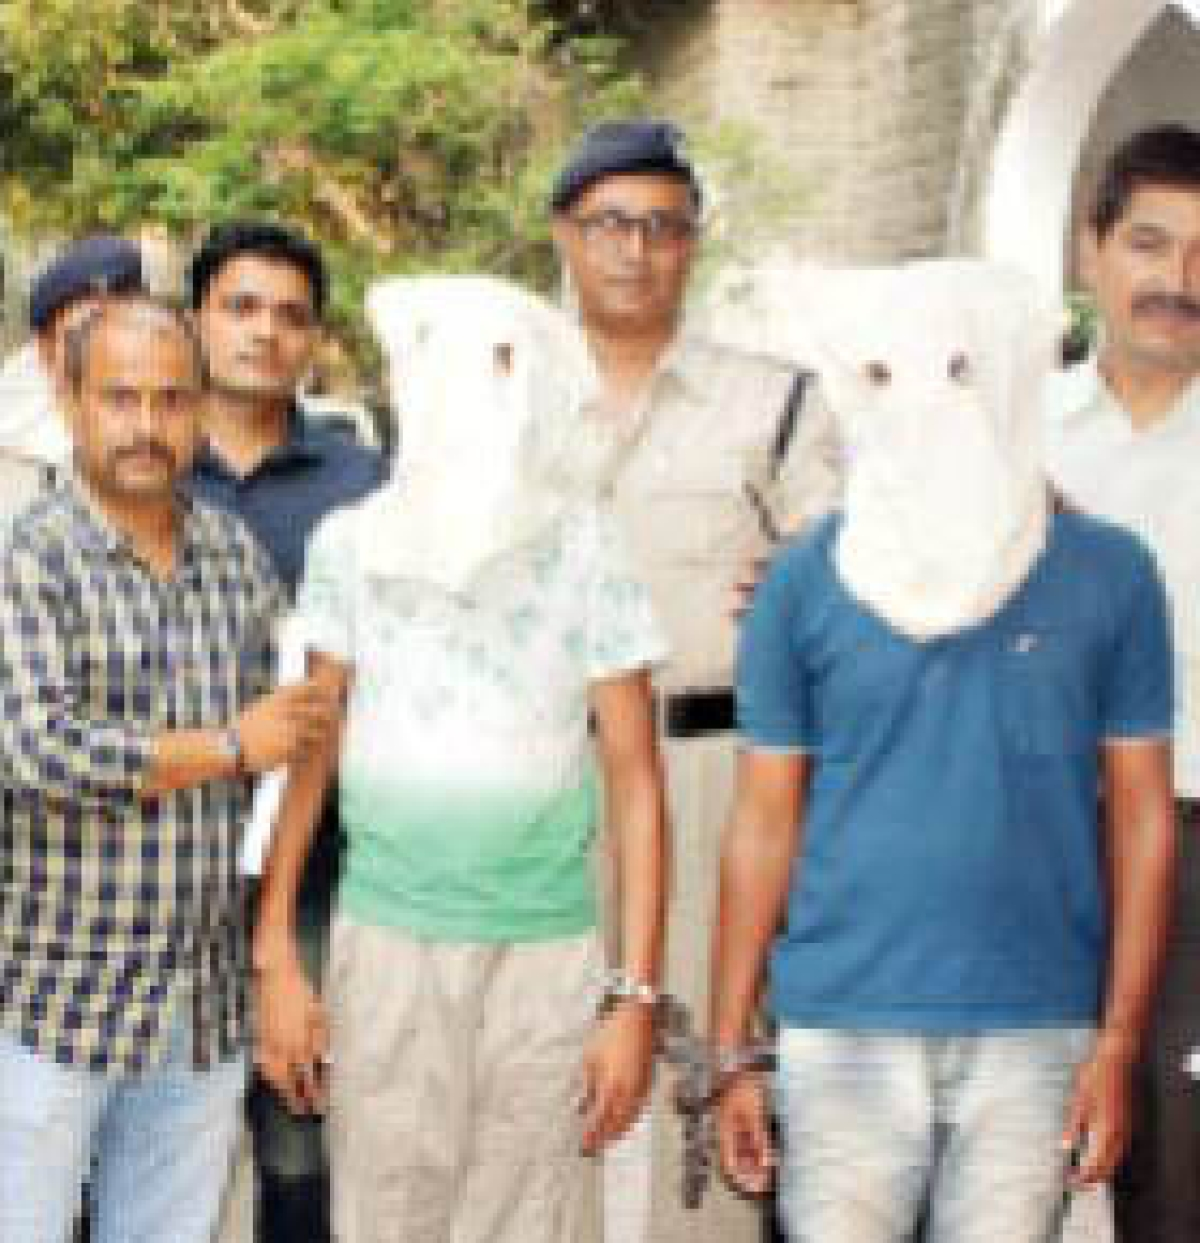 Police arrest two from Ahmedabad